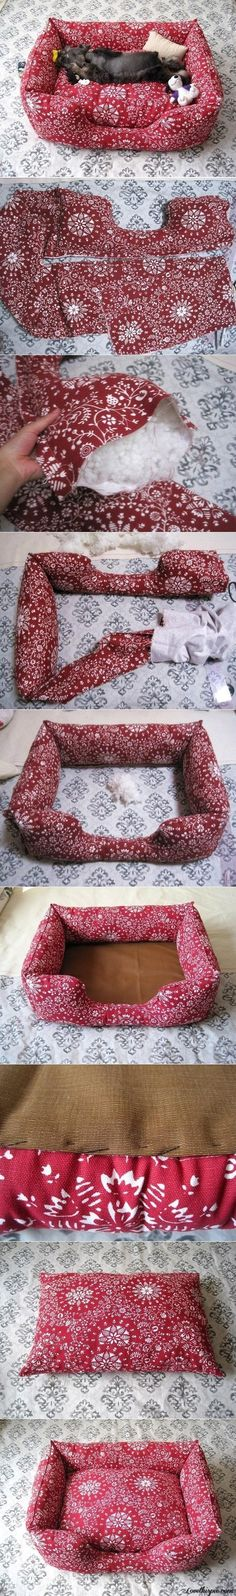 DIY Pets : DIY Fabric Pet Sofa DIY Fabric Pet Sofa diy furniture crafts craft ideas diy ideas home diy pet bed fabric Sharing is caring, don't forget to share ! Fabric Crafts, Sewing Crafts, Sewing Projects, Diy Projects, Diy Crafts, Sewing Tutorials, Sewing Hacks, Sewing Patterns, Free Tutorials